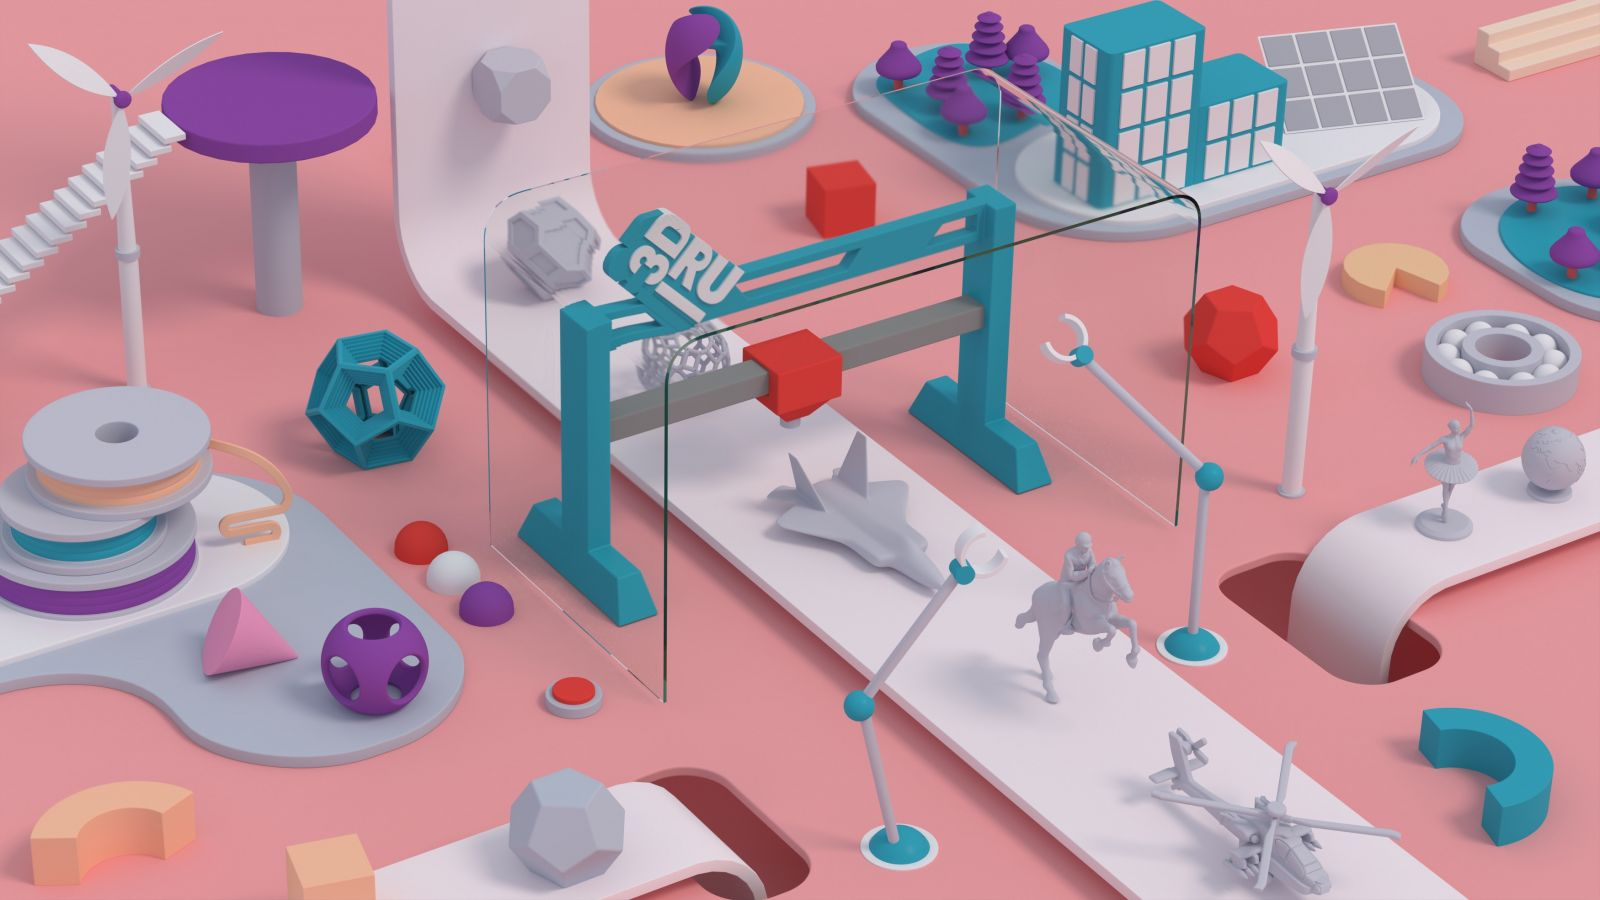 3D Printing Startups: How to Pitch Your Project to Investors